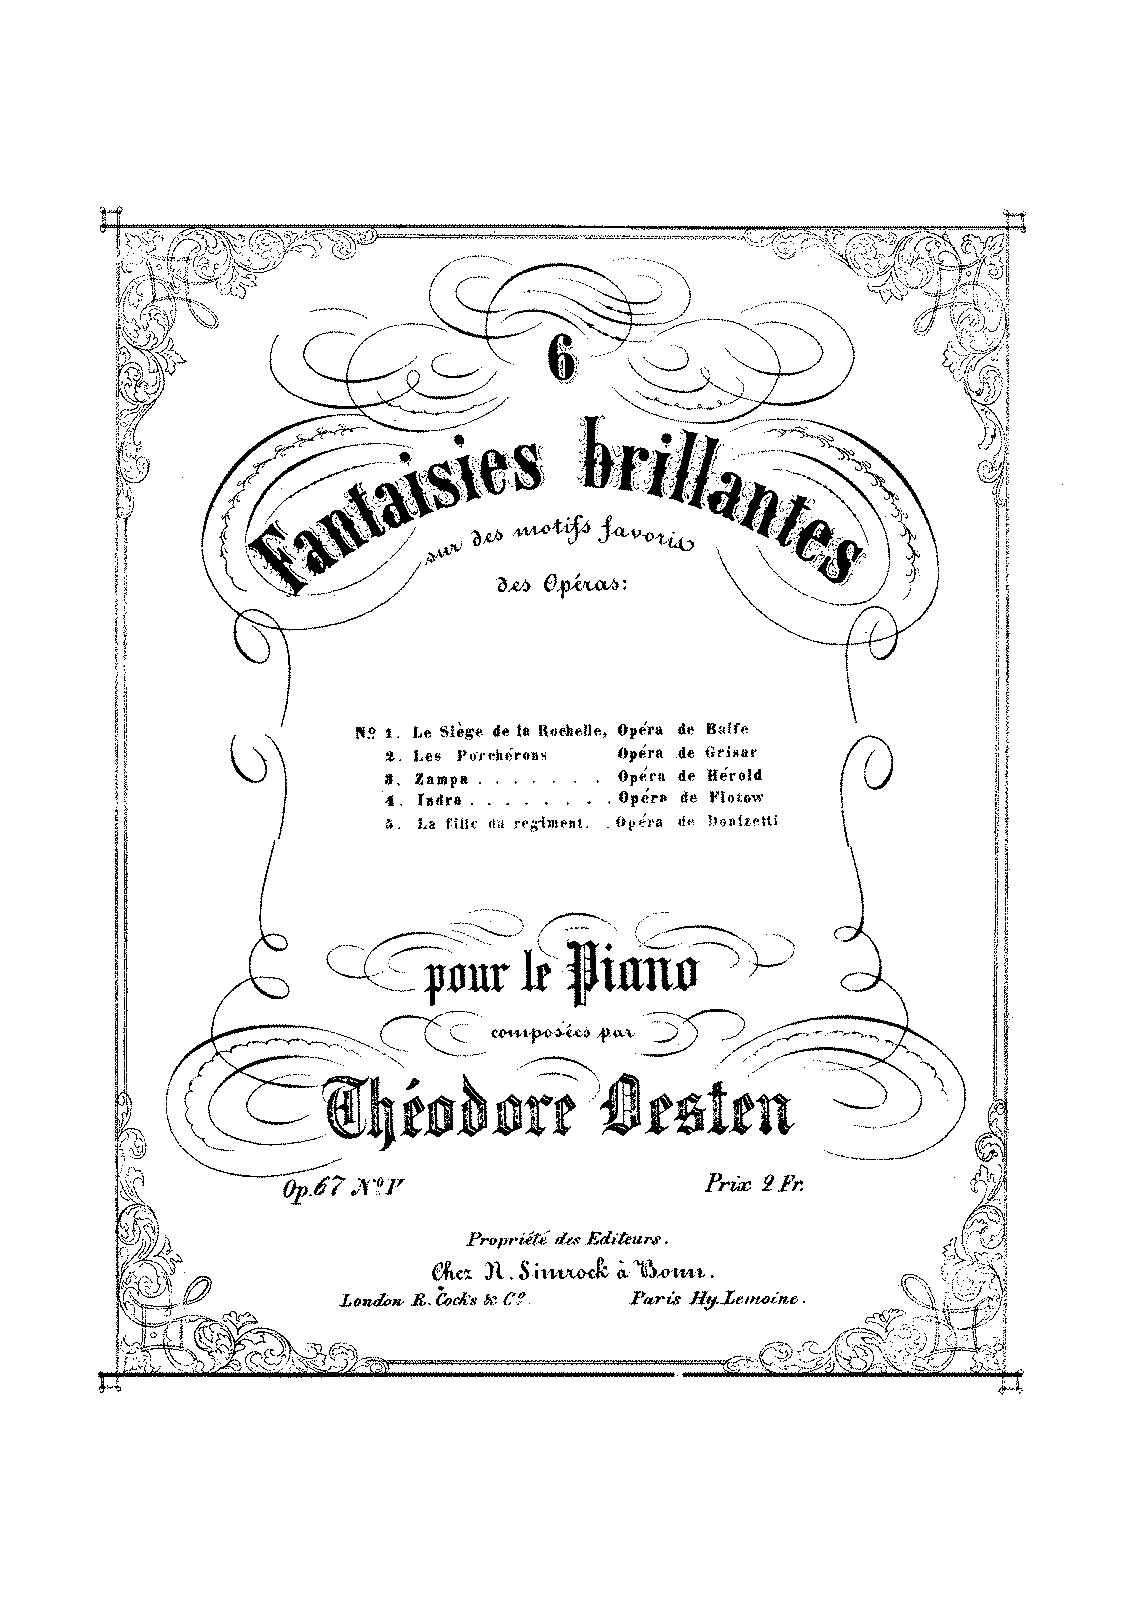 PMLP174533-Oesten - 67-5 Fantaisies Brillantes op.67 no 5 La Fille du Regiment - UNC.pdf